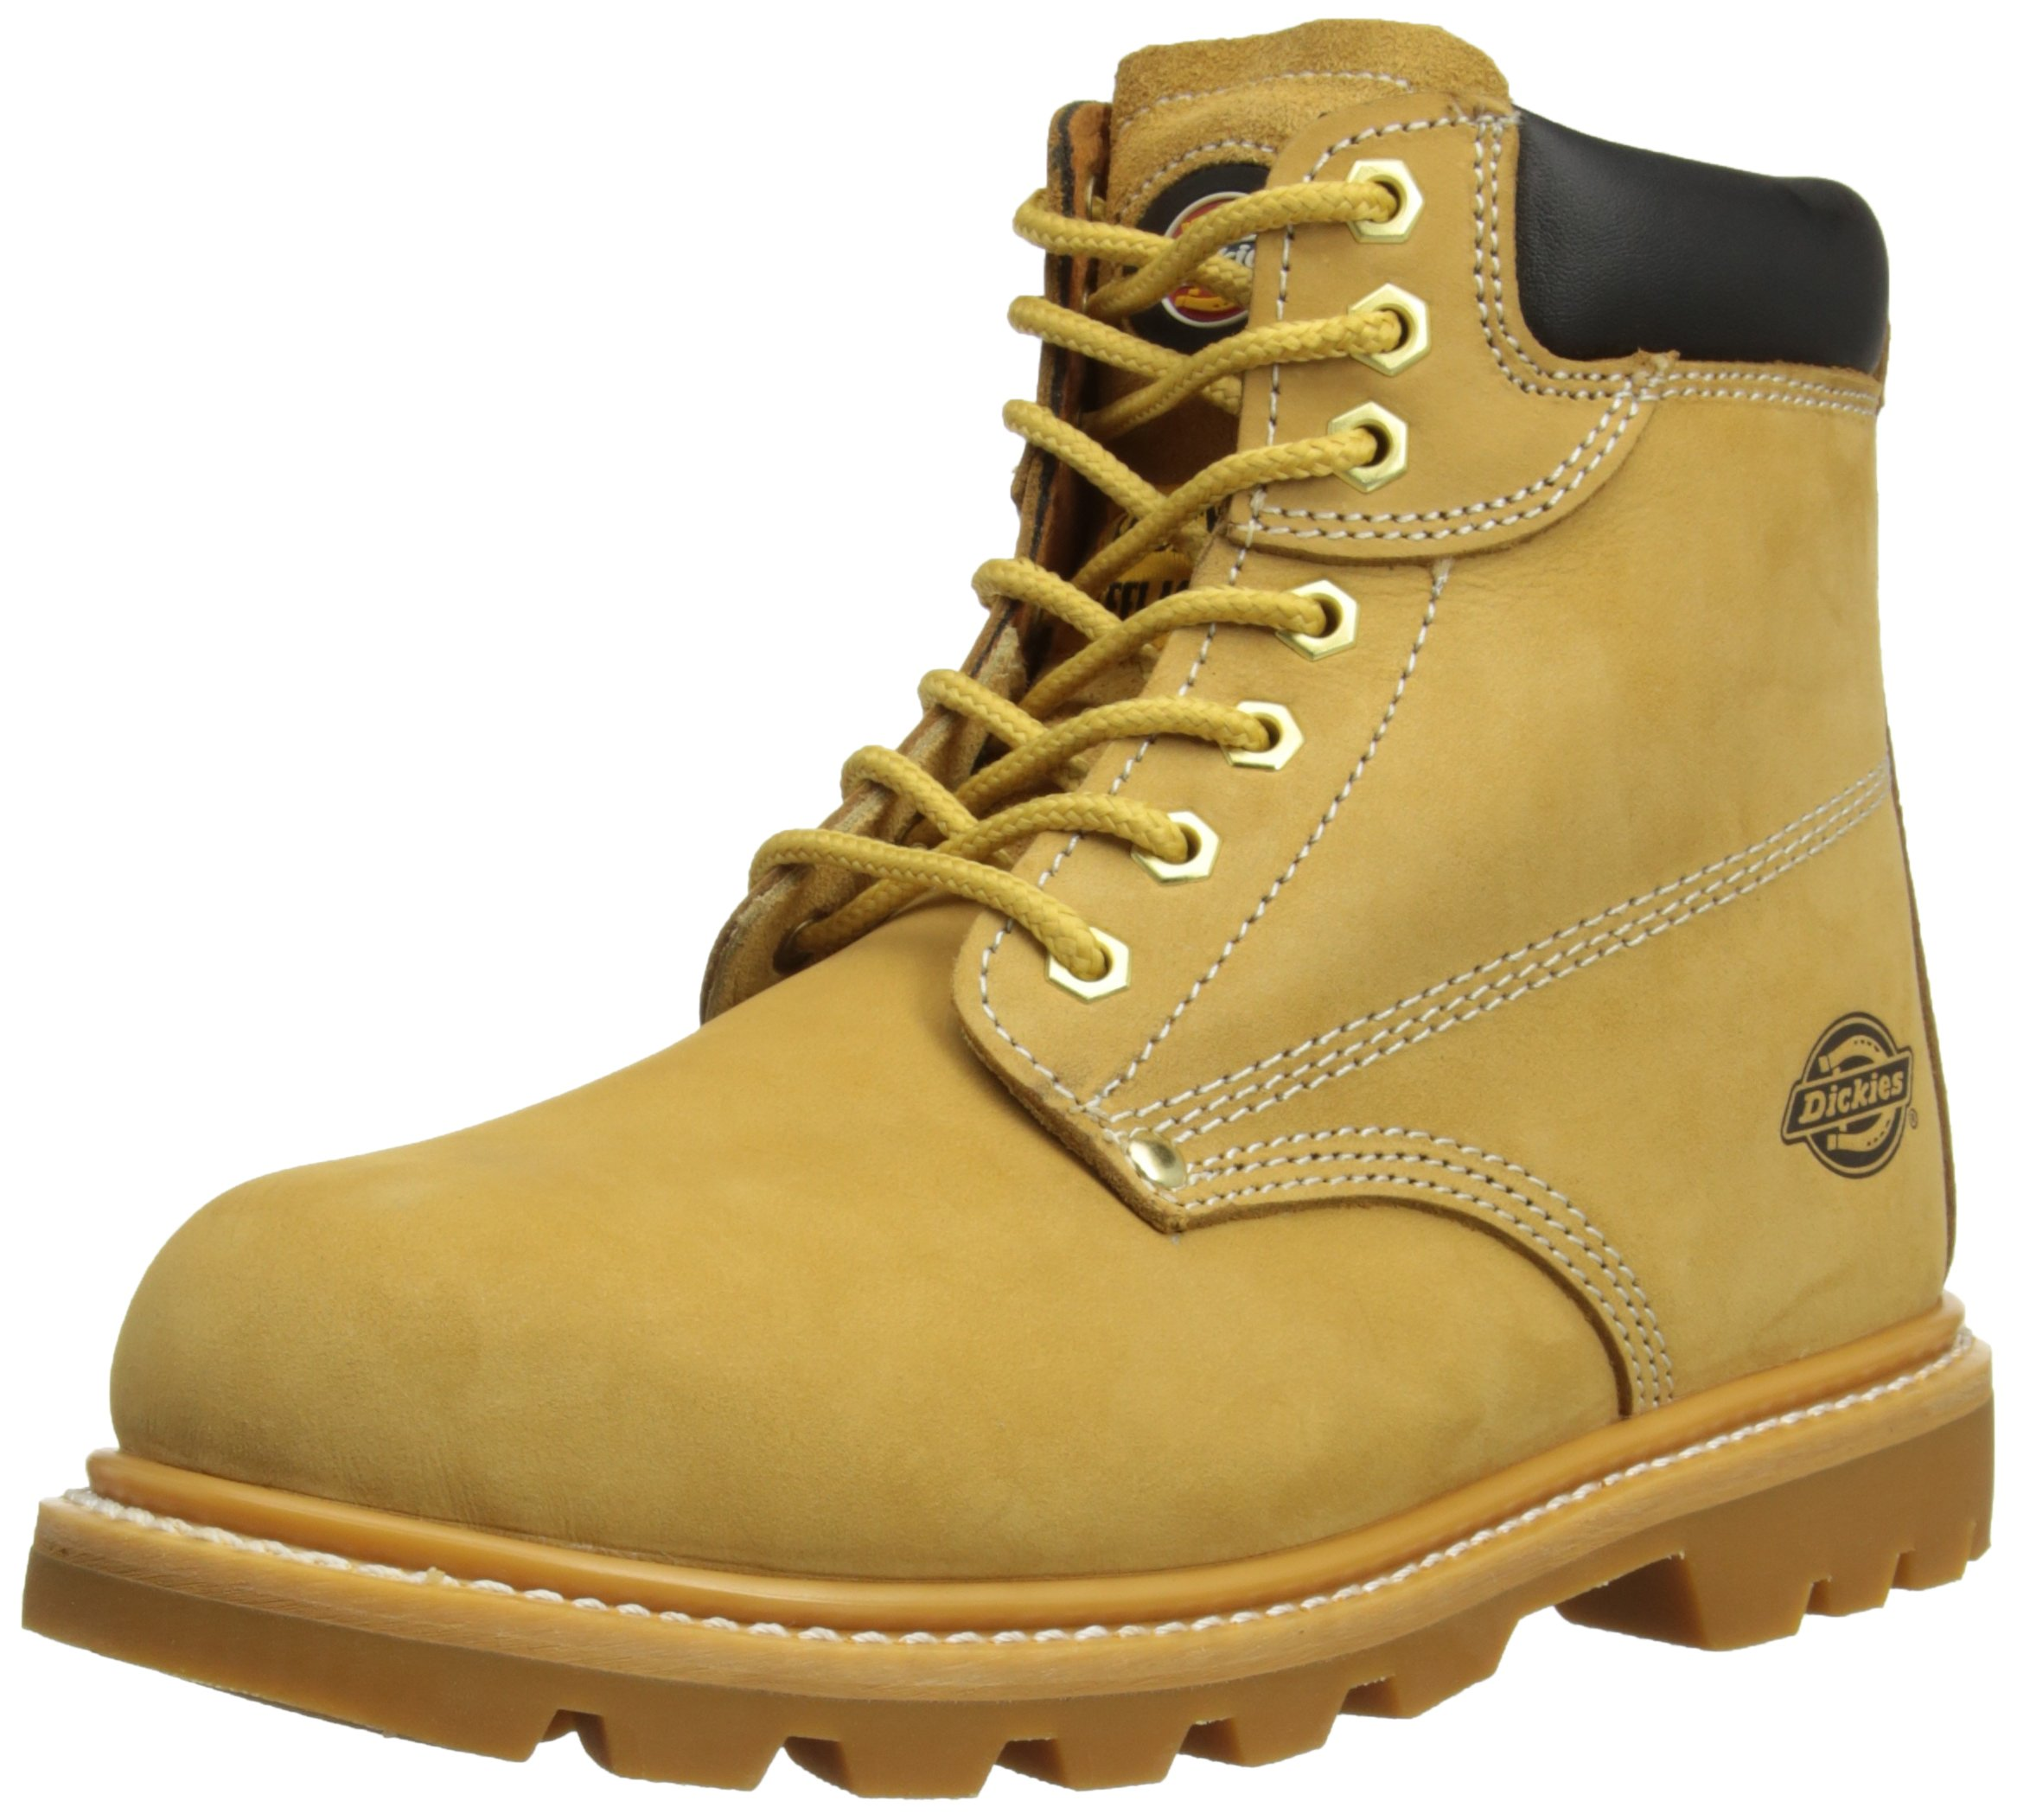 Dickies Unisex Cleveland Super Steel Toe-cap Safety Boot / Footwear (10.5 US) (Honey)